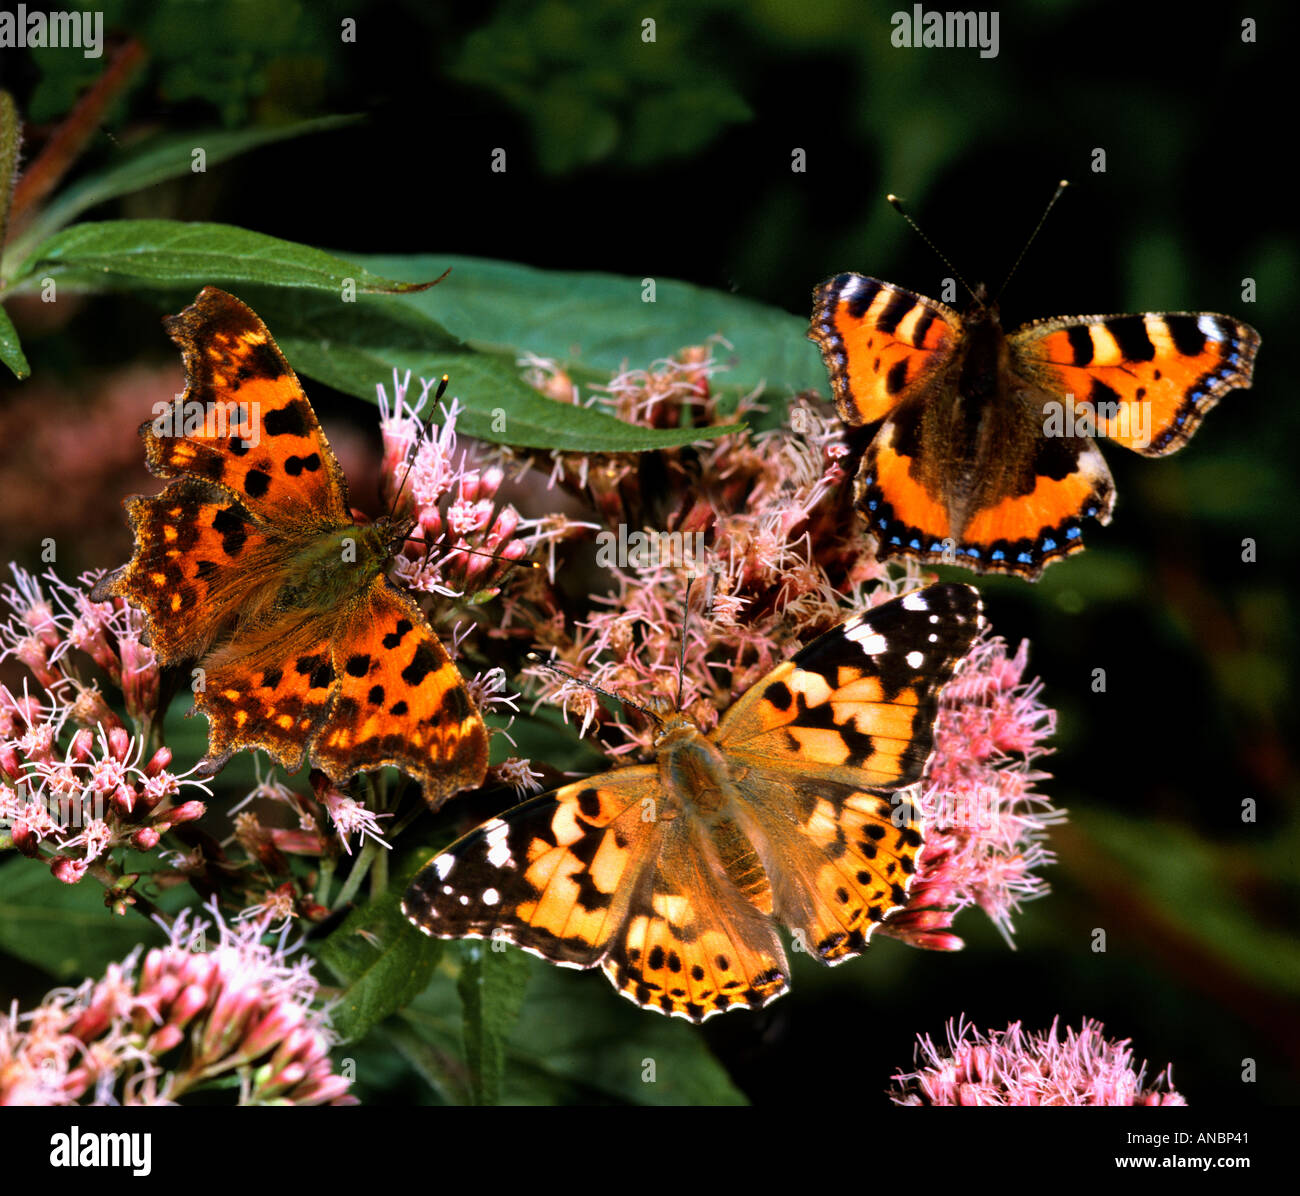 comma , painted lady and small tortoiseshell on flower / Nymphalis c-album Cynthia cardui Aglais urticae - Stock Image